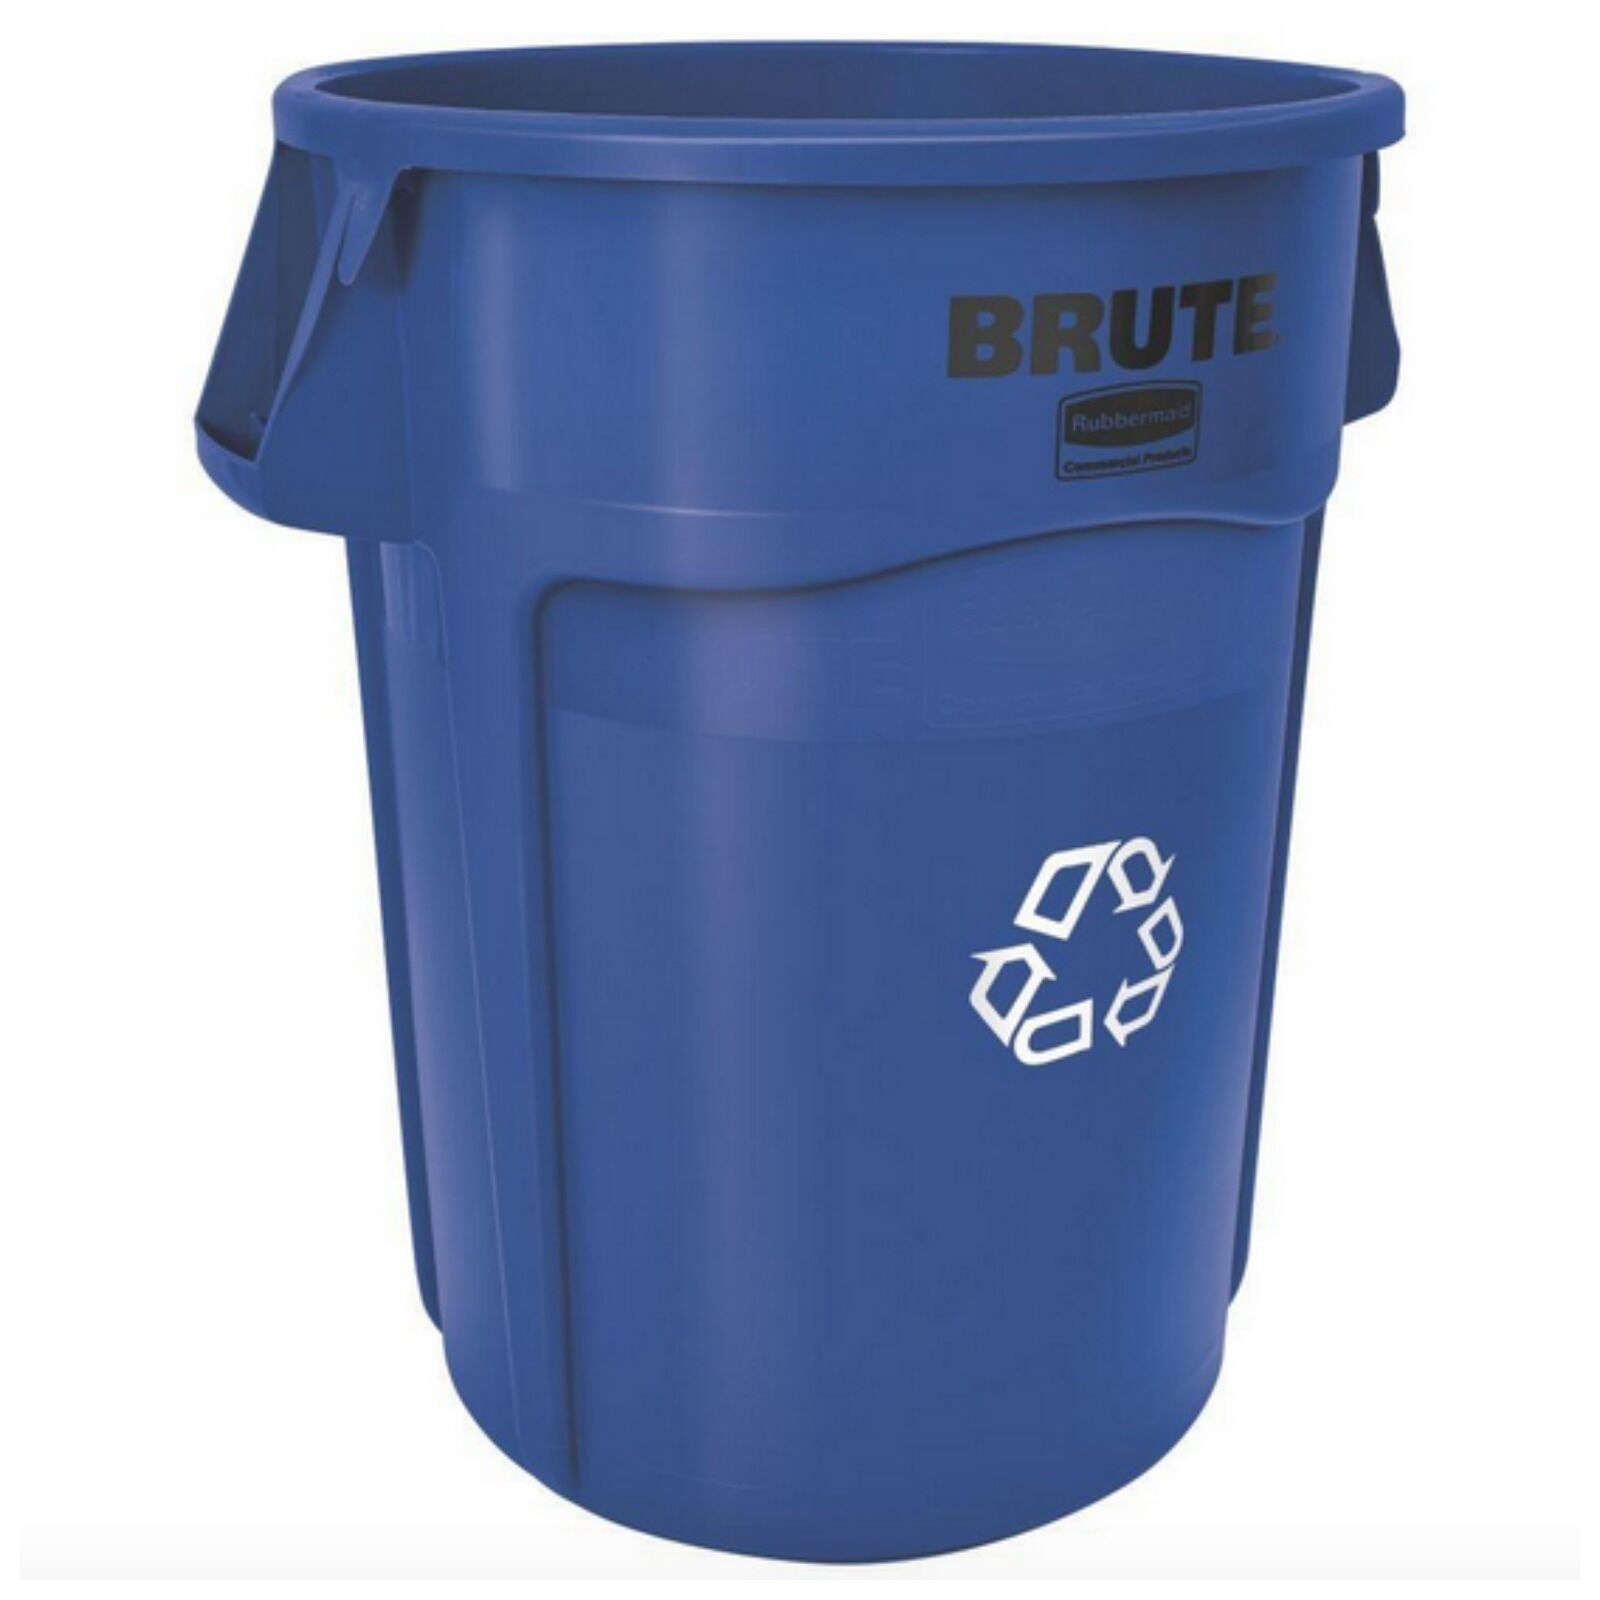 Rubbermaid Commercial Brute Recycle Bin Trash Cans Container Plastic ...